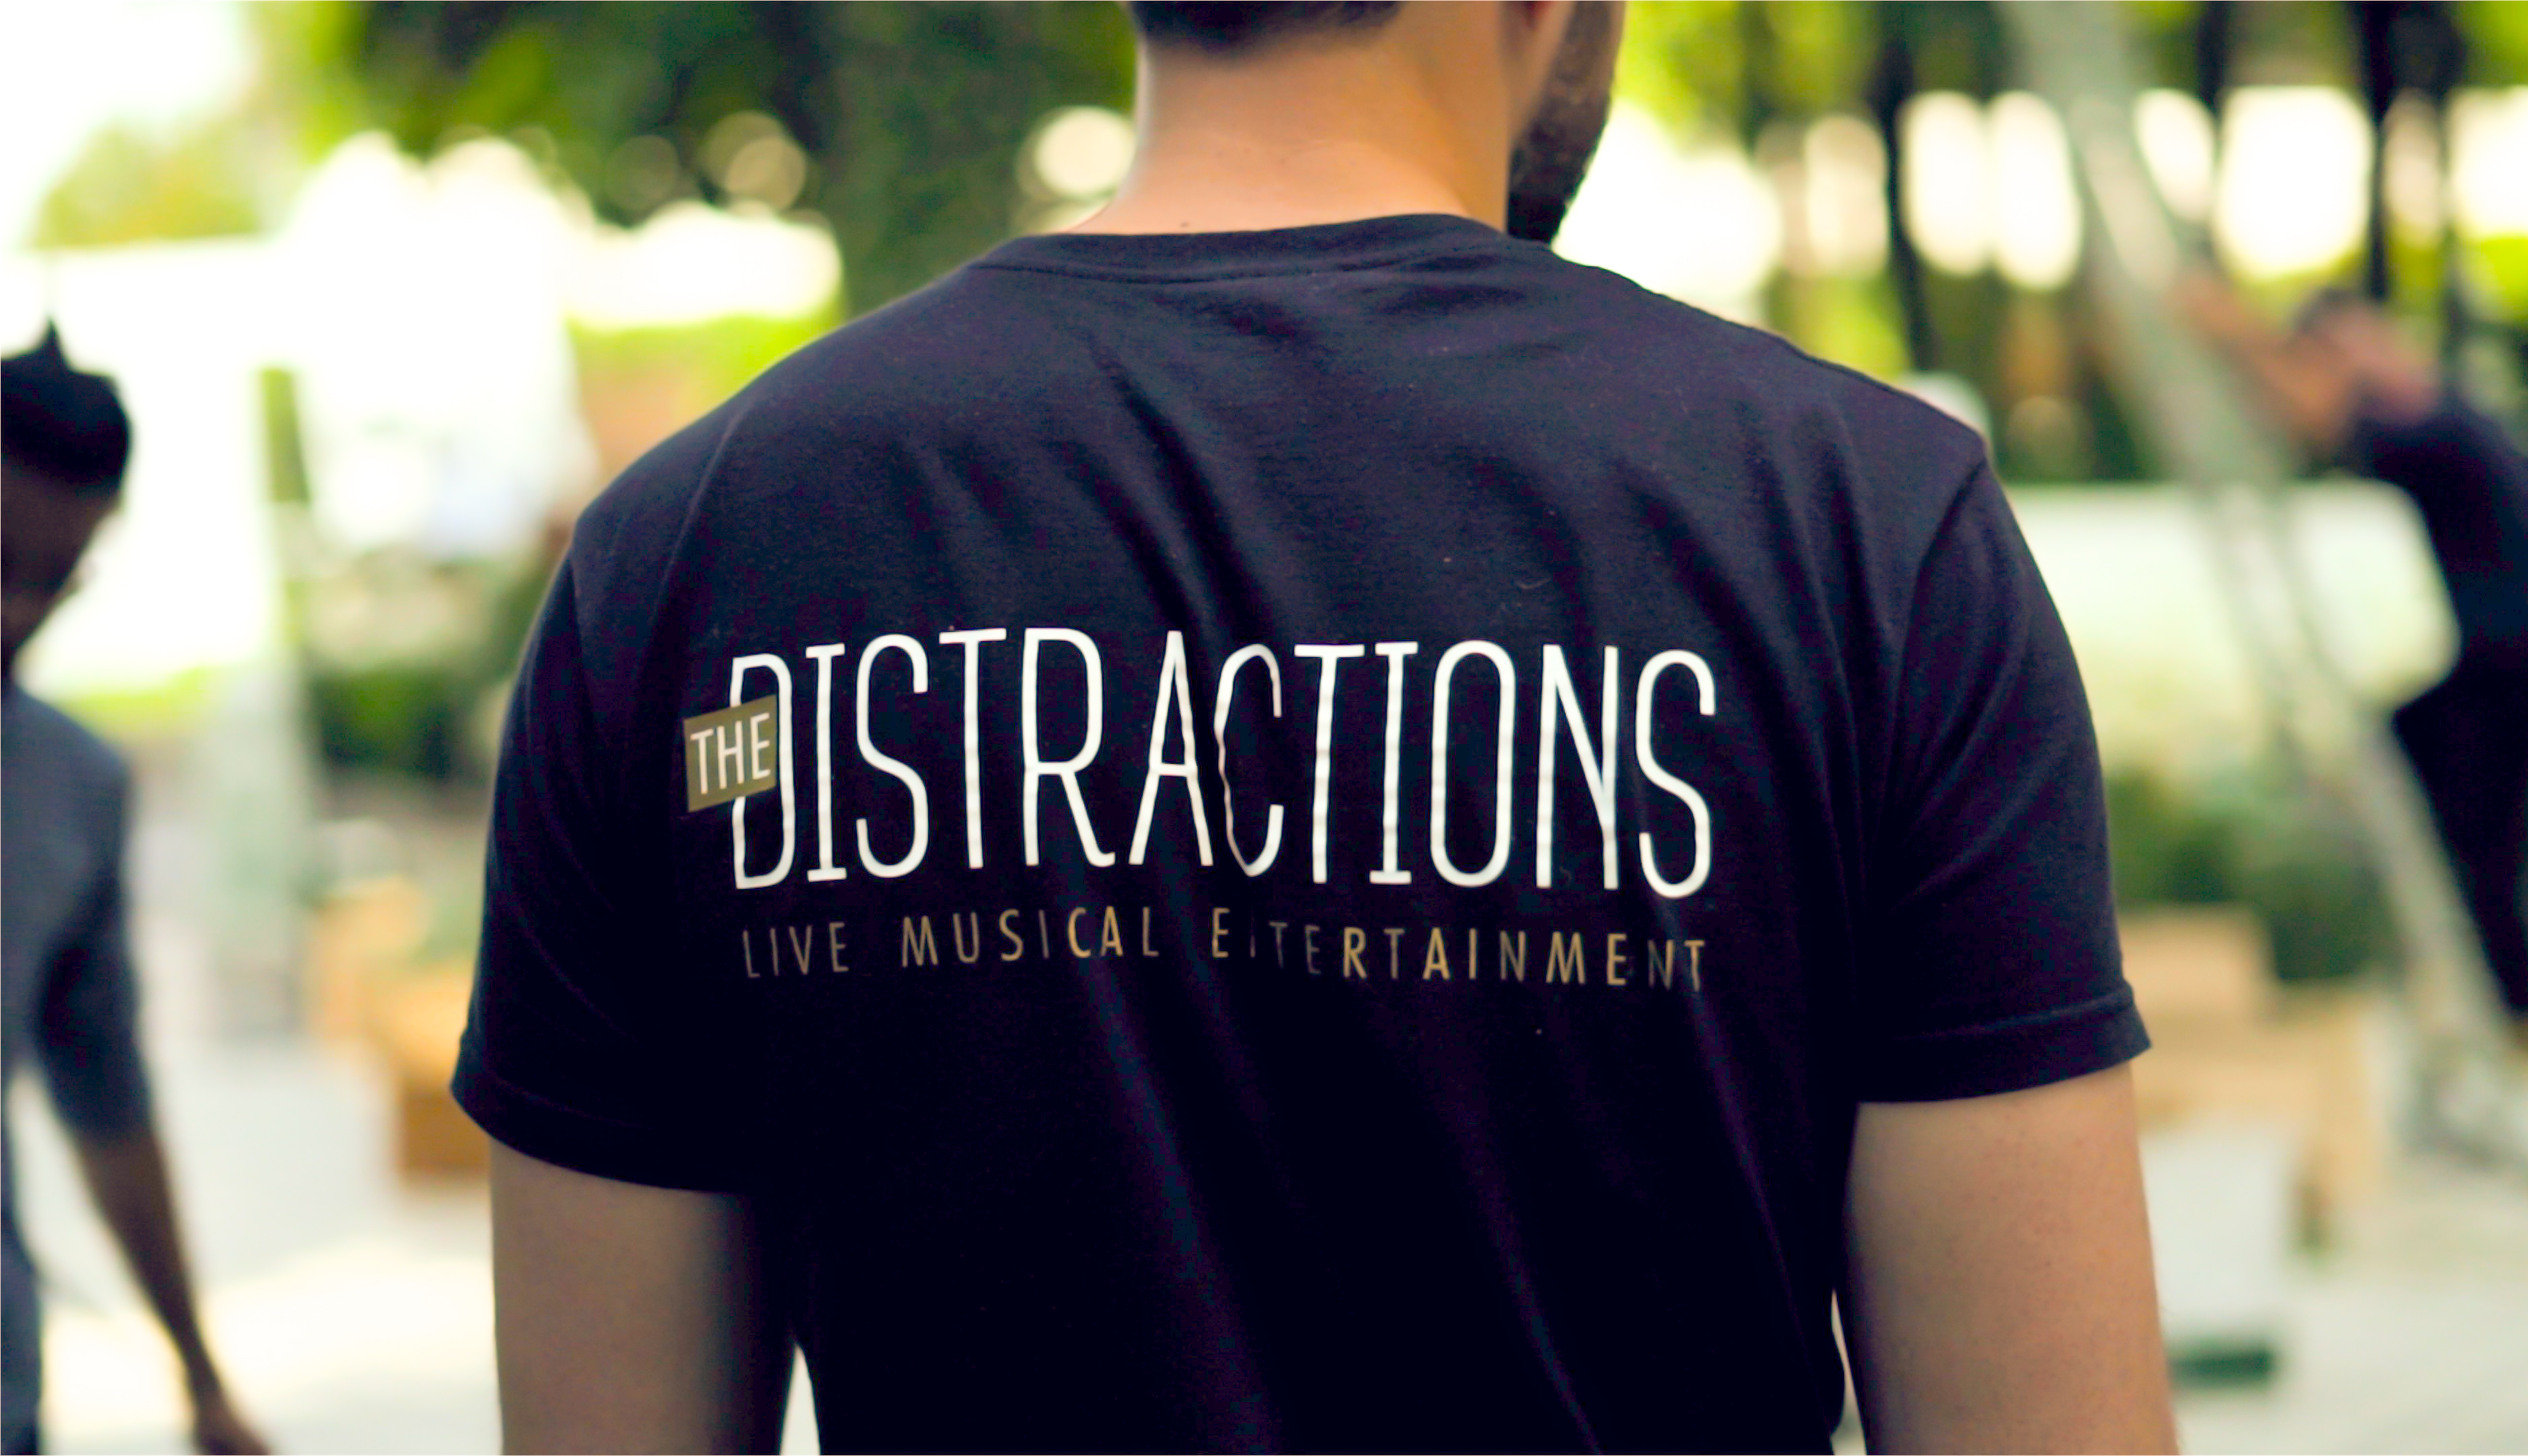 The Distractions Logo